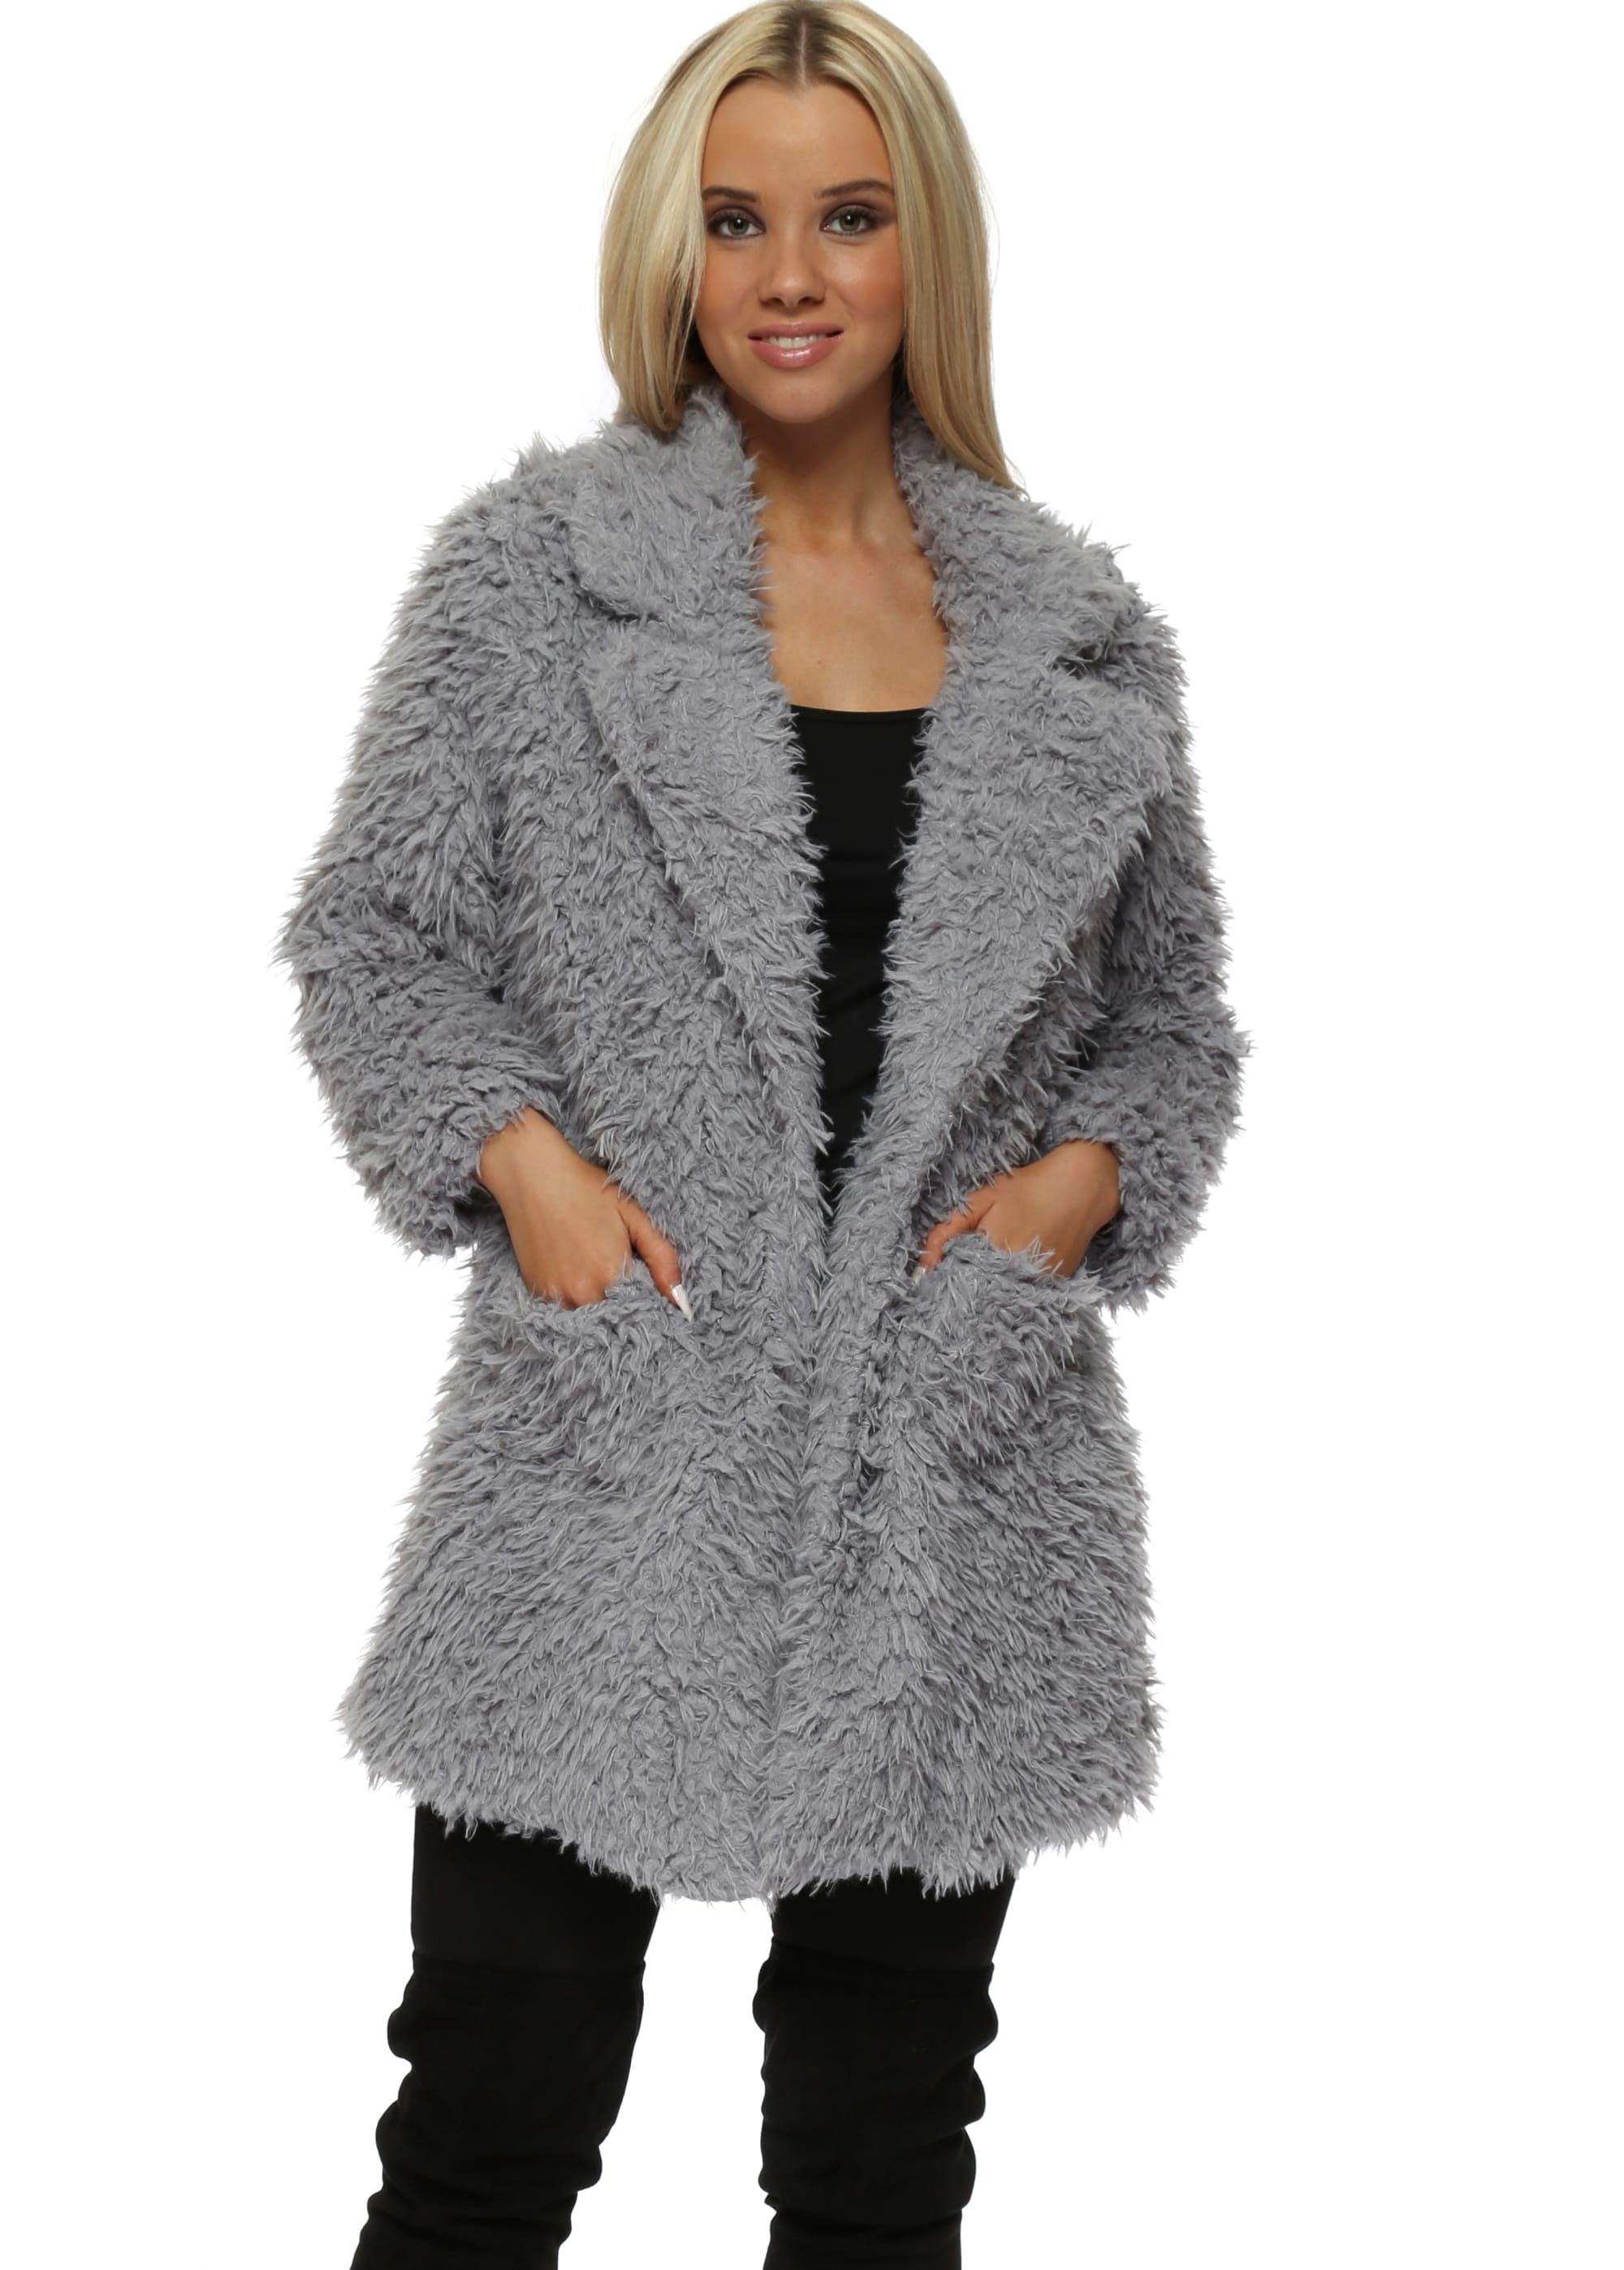 Voodoo Paris Grey Shaggy Faux Fur Coat By Lucy Wang